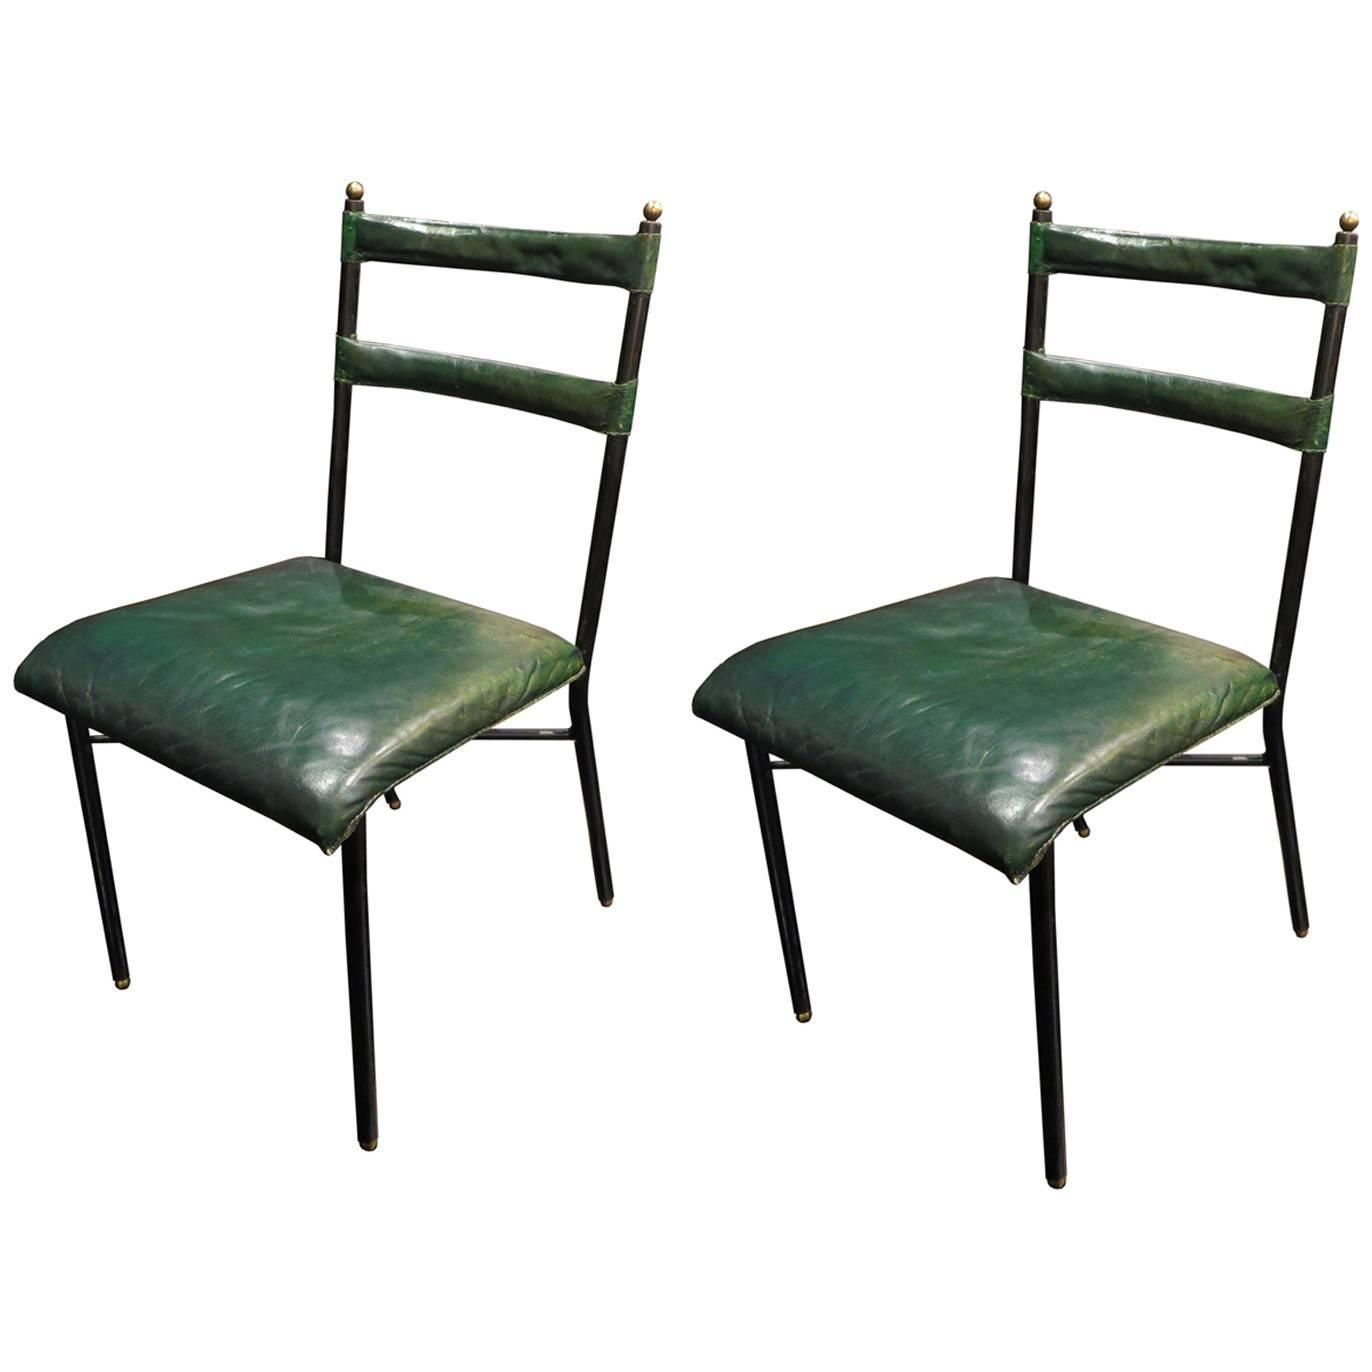 Pair Of Original Jacques Adnet Chairs 1950s Chair The